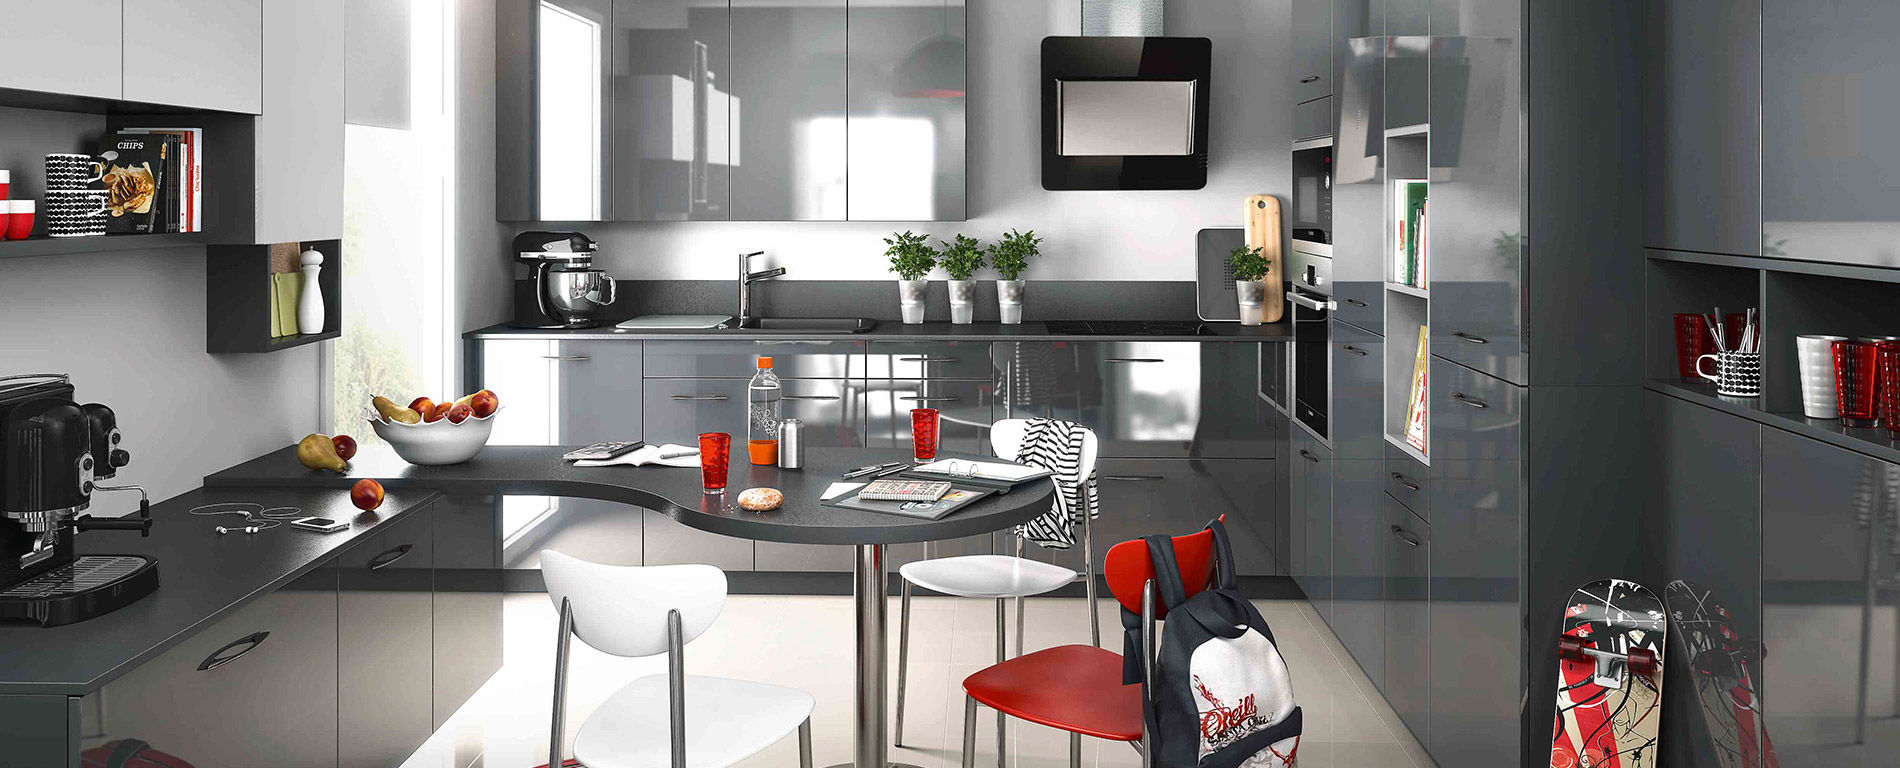 Cuisine Low Cost Mobalpa contemporary kitchen / laminate / u-shaped / high-gloss